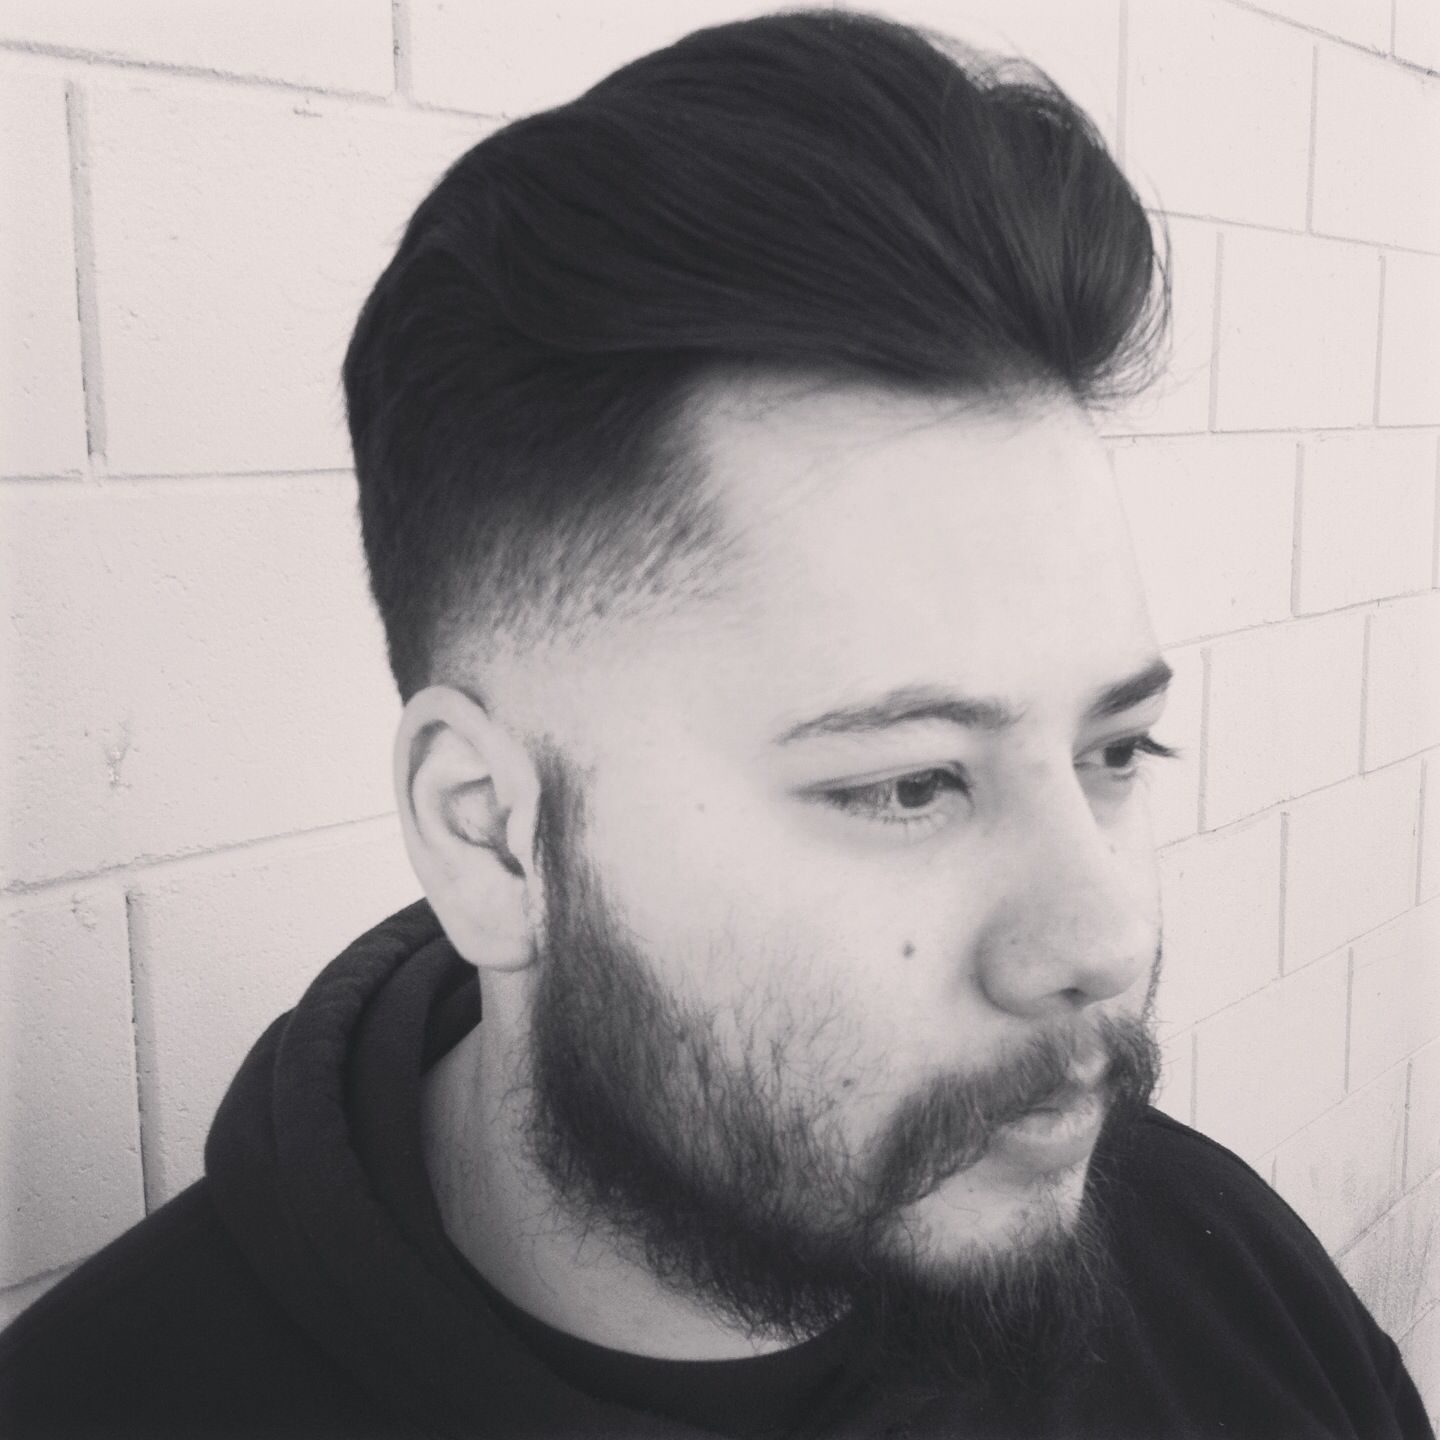 There It Is No Need Mens Creative Cut Seiji Cason For Another - The look hair salon